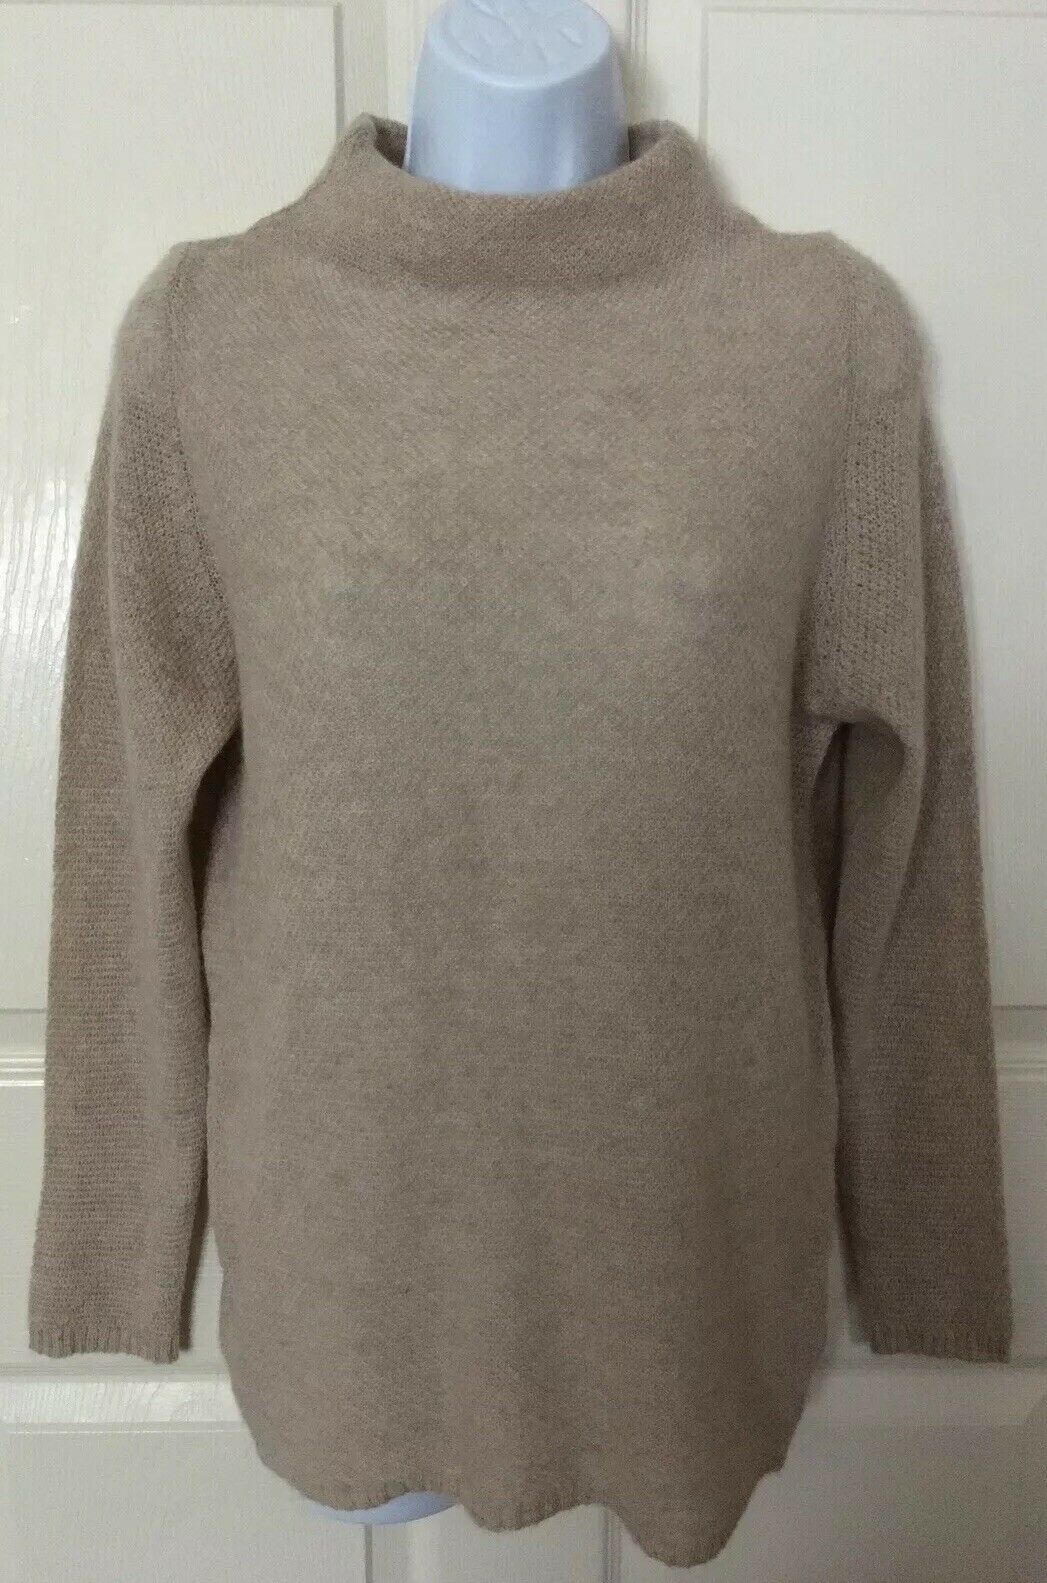 New Benedetta B 100% Cashmere Sweater Sise Large  Made in  Beige color